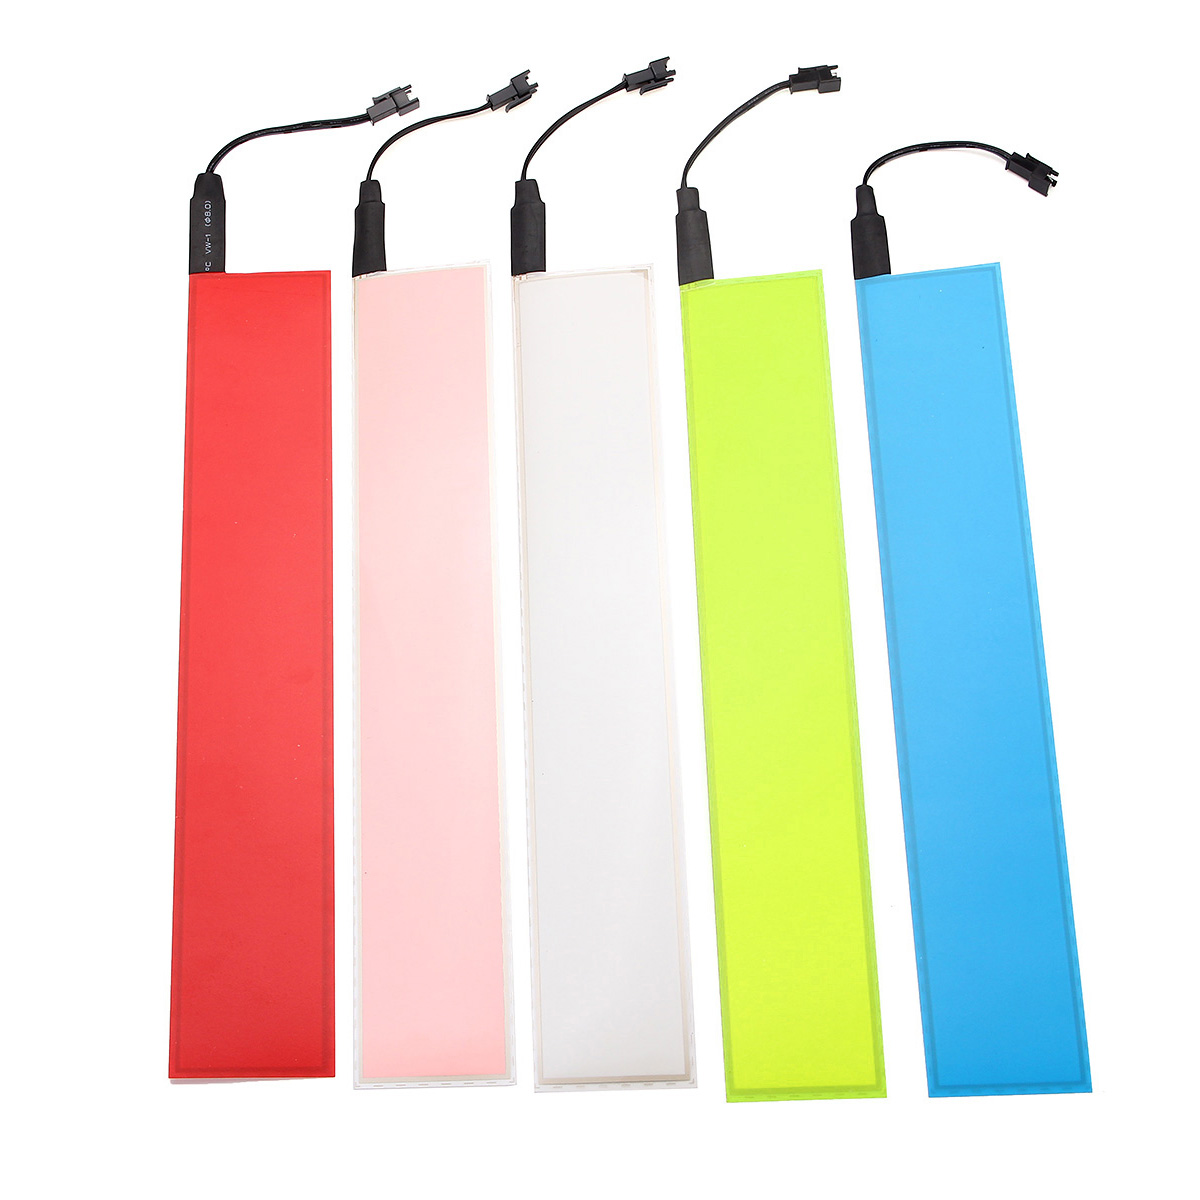 30x5cm 12V Flexible EL Light Panel Electroluminescent Back Light Strip Lamp With Inverter For Home Car Party